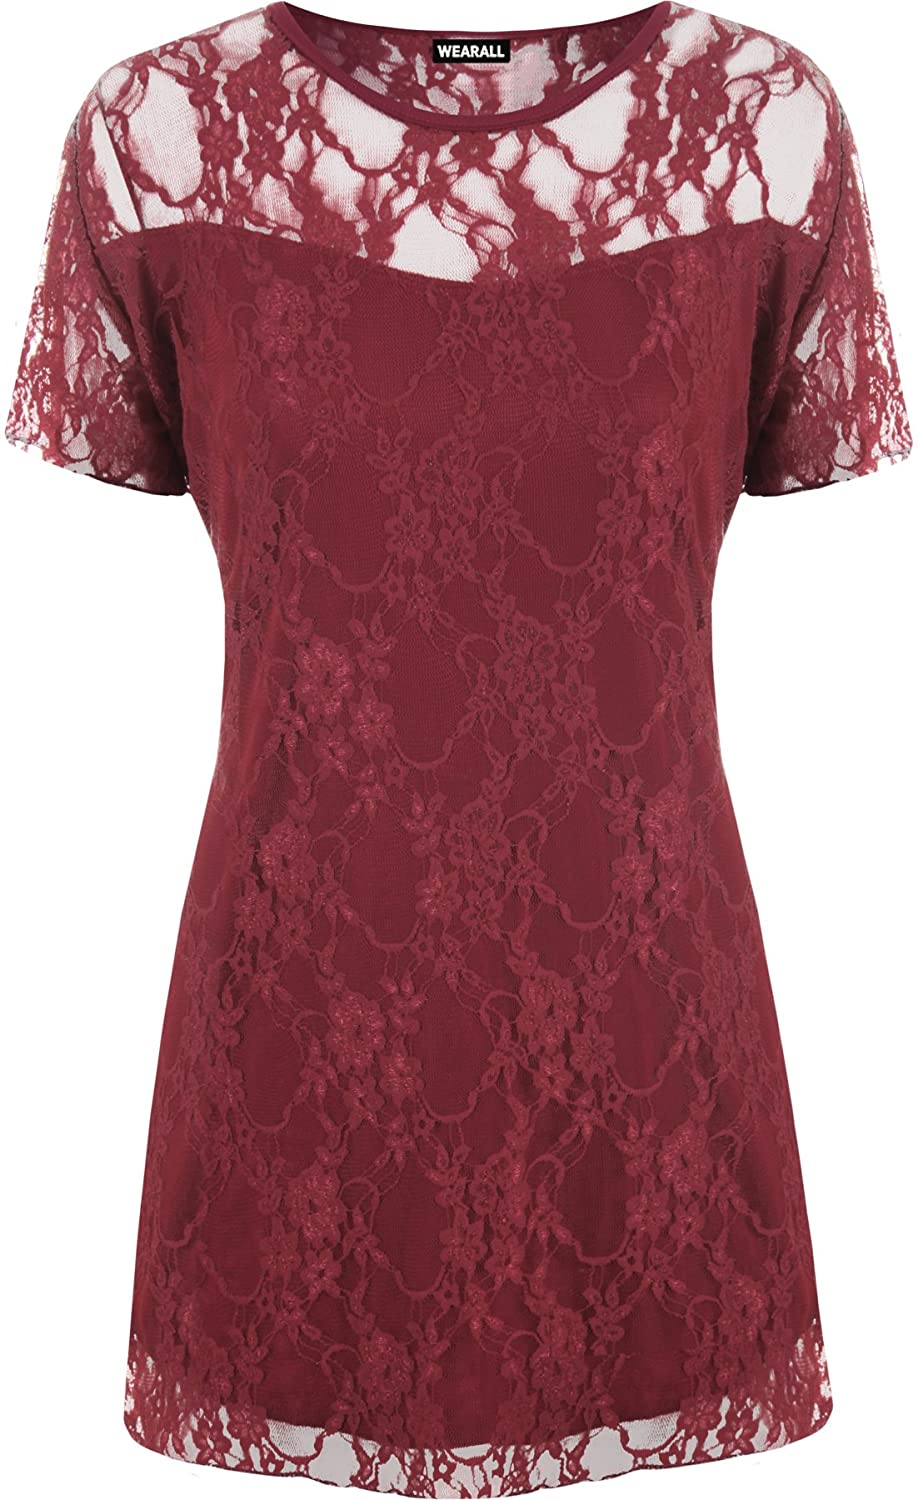 WearAll Ladies Lace Lined Top Womens Plus Size Stretch Short Sleeve Top Sizes 14-28 17793